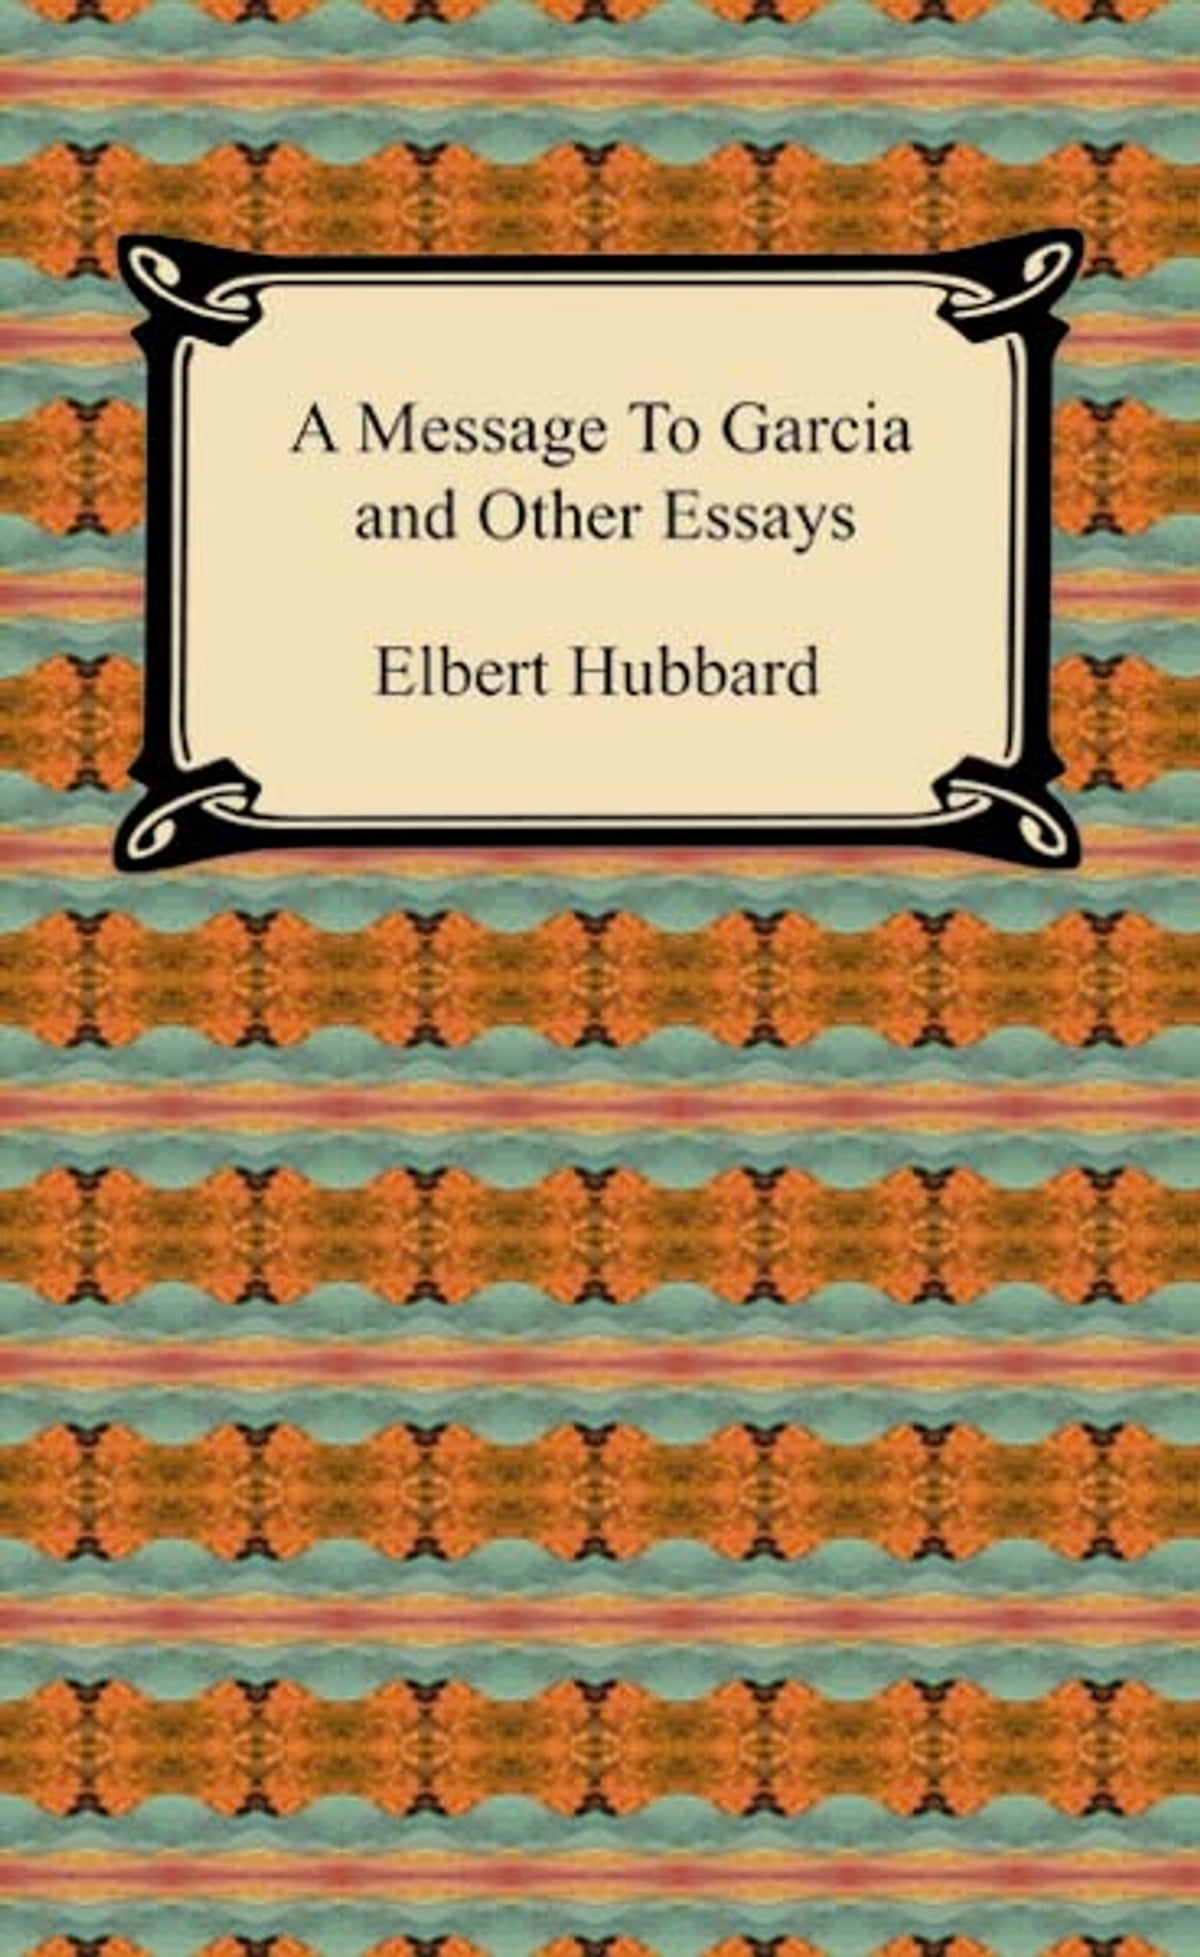 a message to garcia and other essays ebook by elbert hubbard a message to garcia and other essays ebook by elbert hubbard 9781596744783 kobo